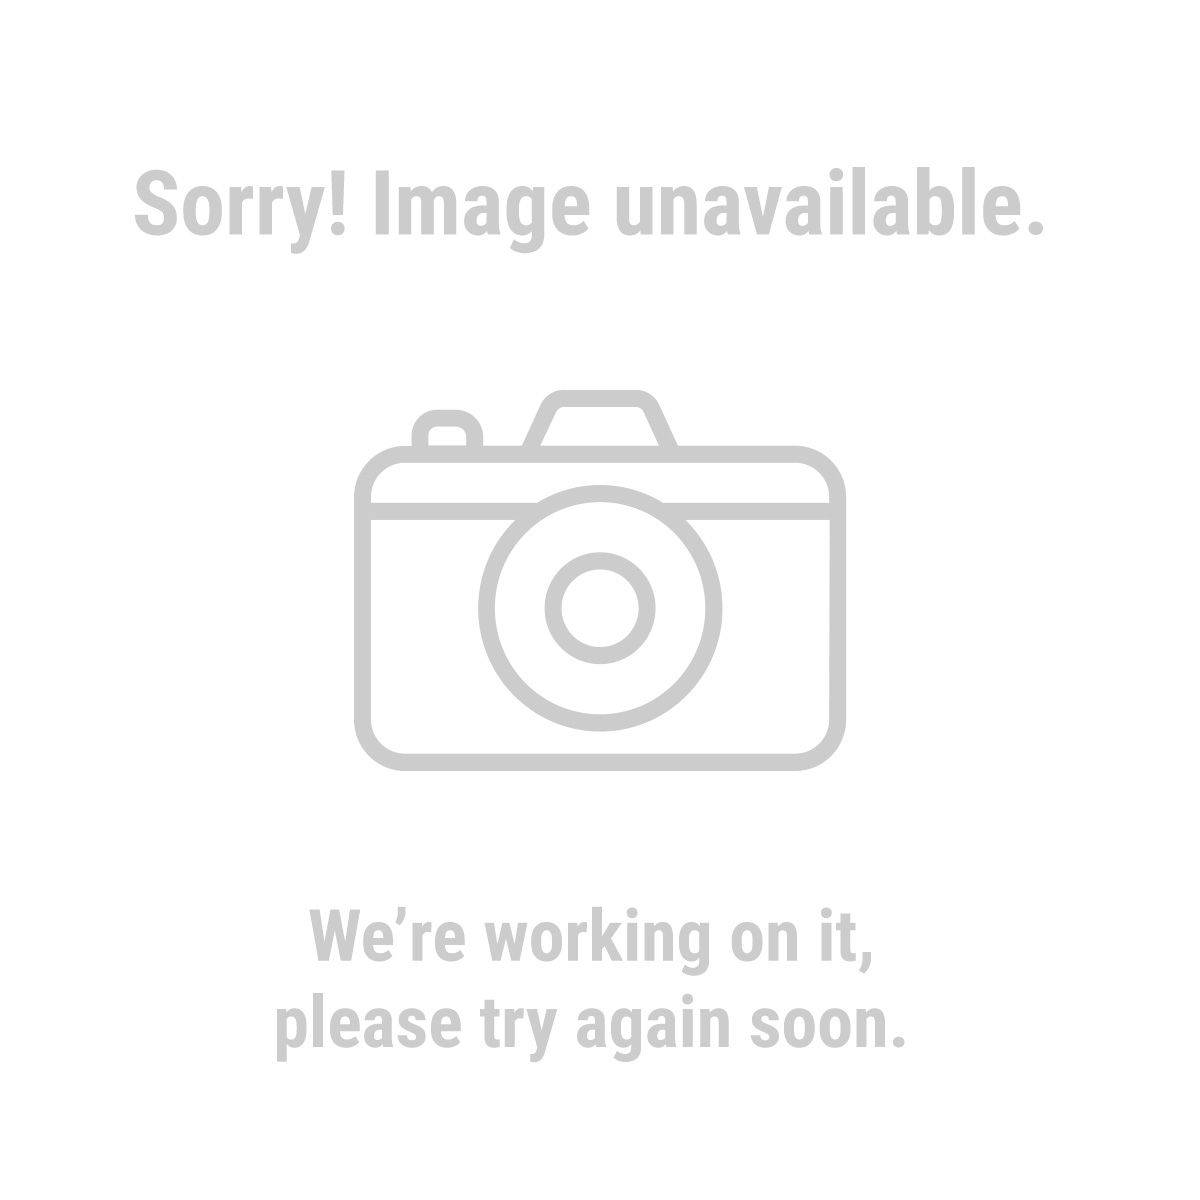 Benchtop router table with 1 34 hp router 15 amp 12 12 in portable thickness planer greentooth Choice Image